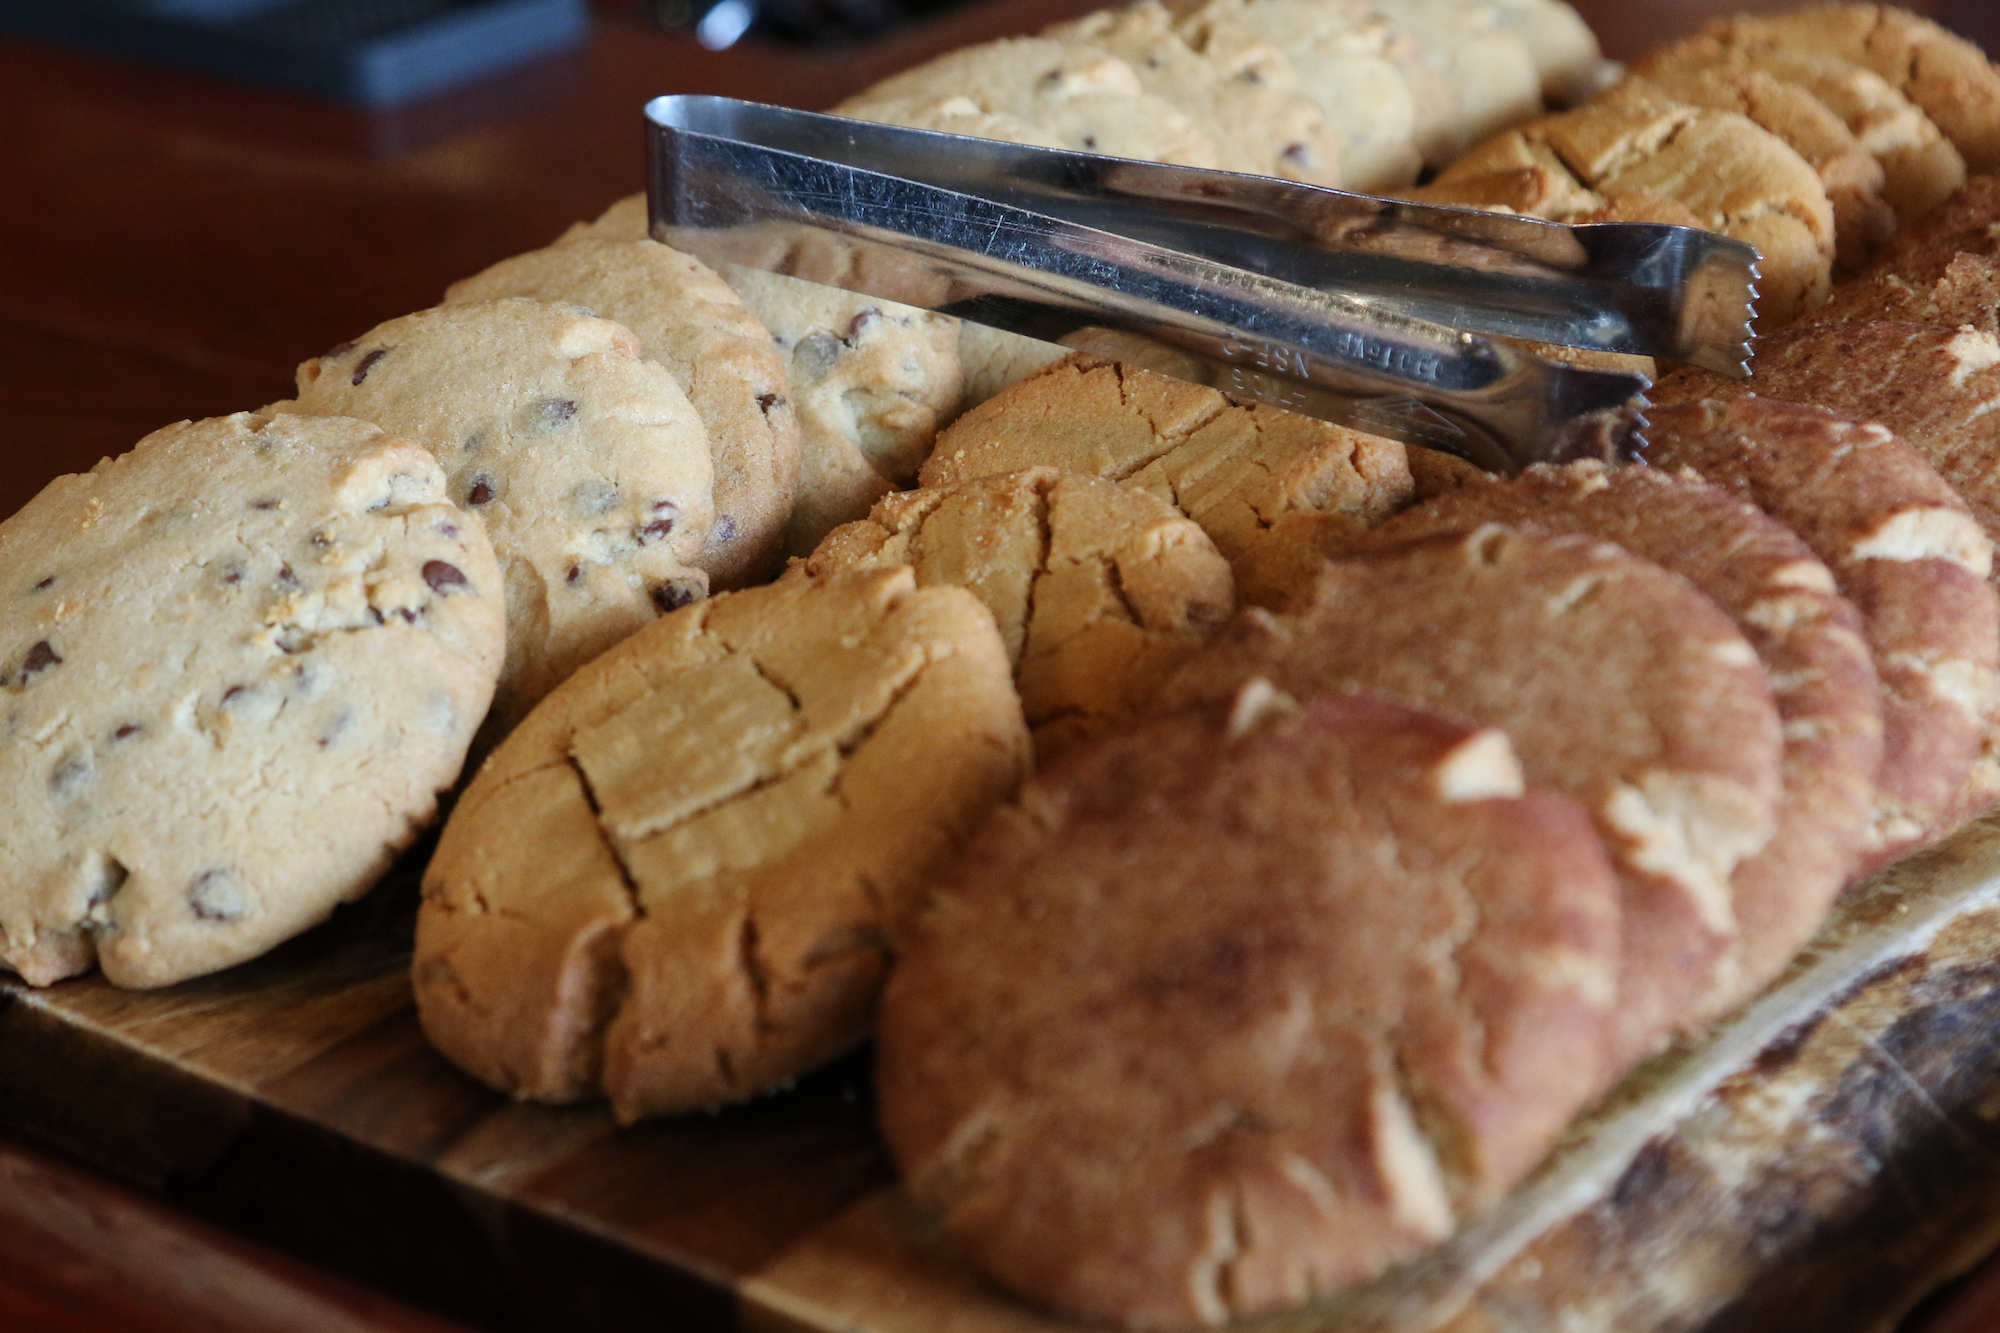 Variety of baked cookies